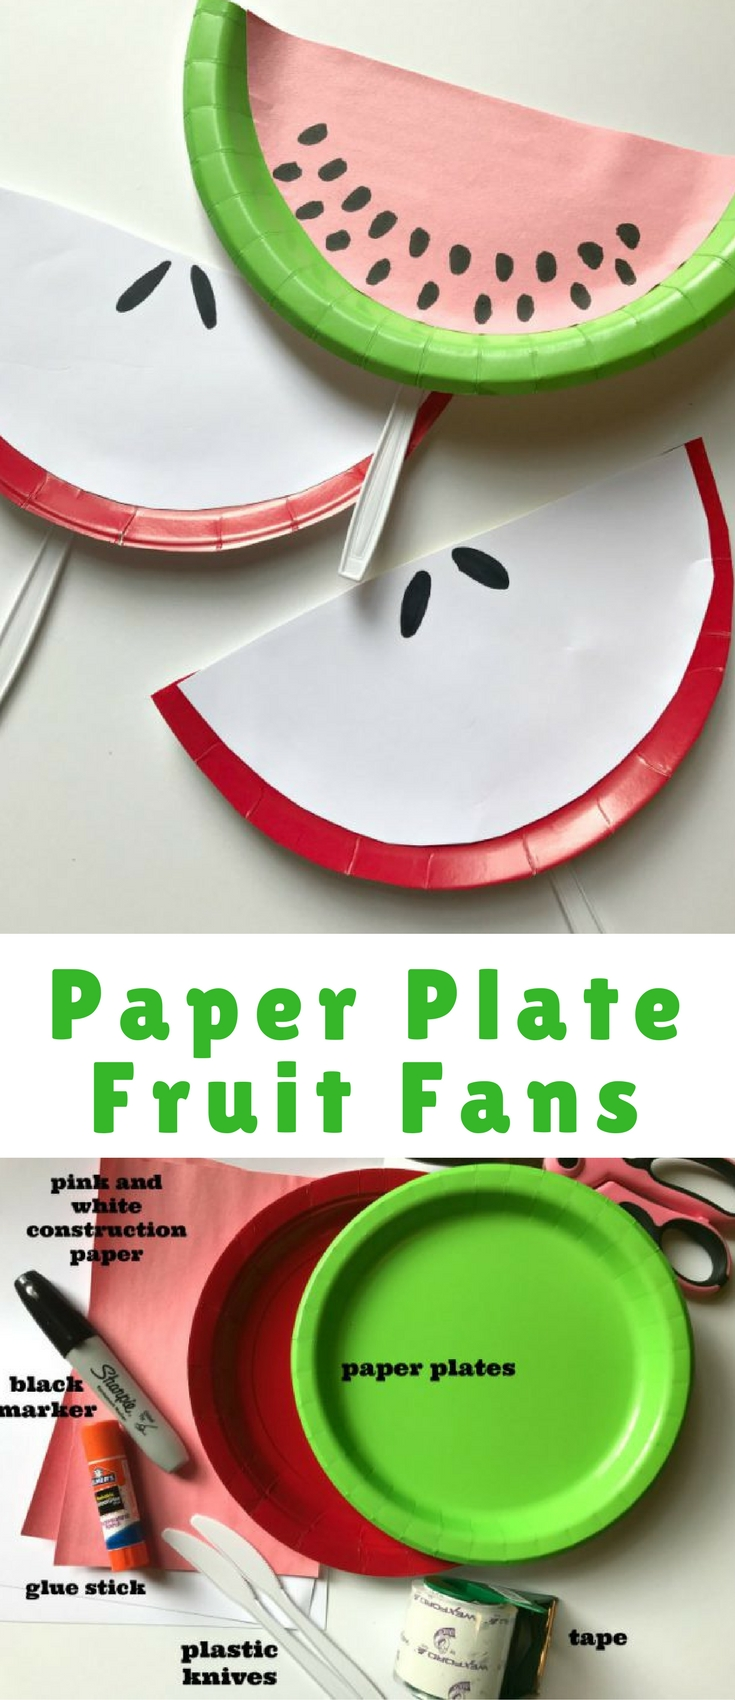 Dig into your craft box and get ready for this easy kid approved summer craft!  sc 1 st  Blogger Bests & Make These Adorable Fruit Slice Paper Plate Fans - Blogger Bests